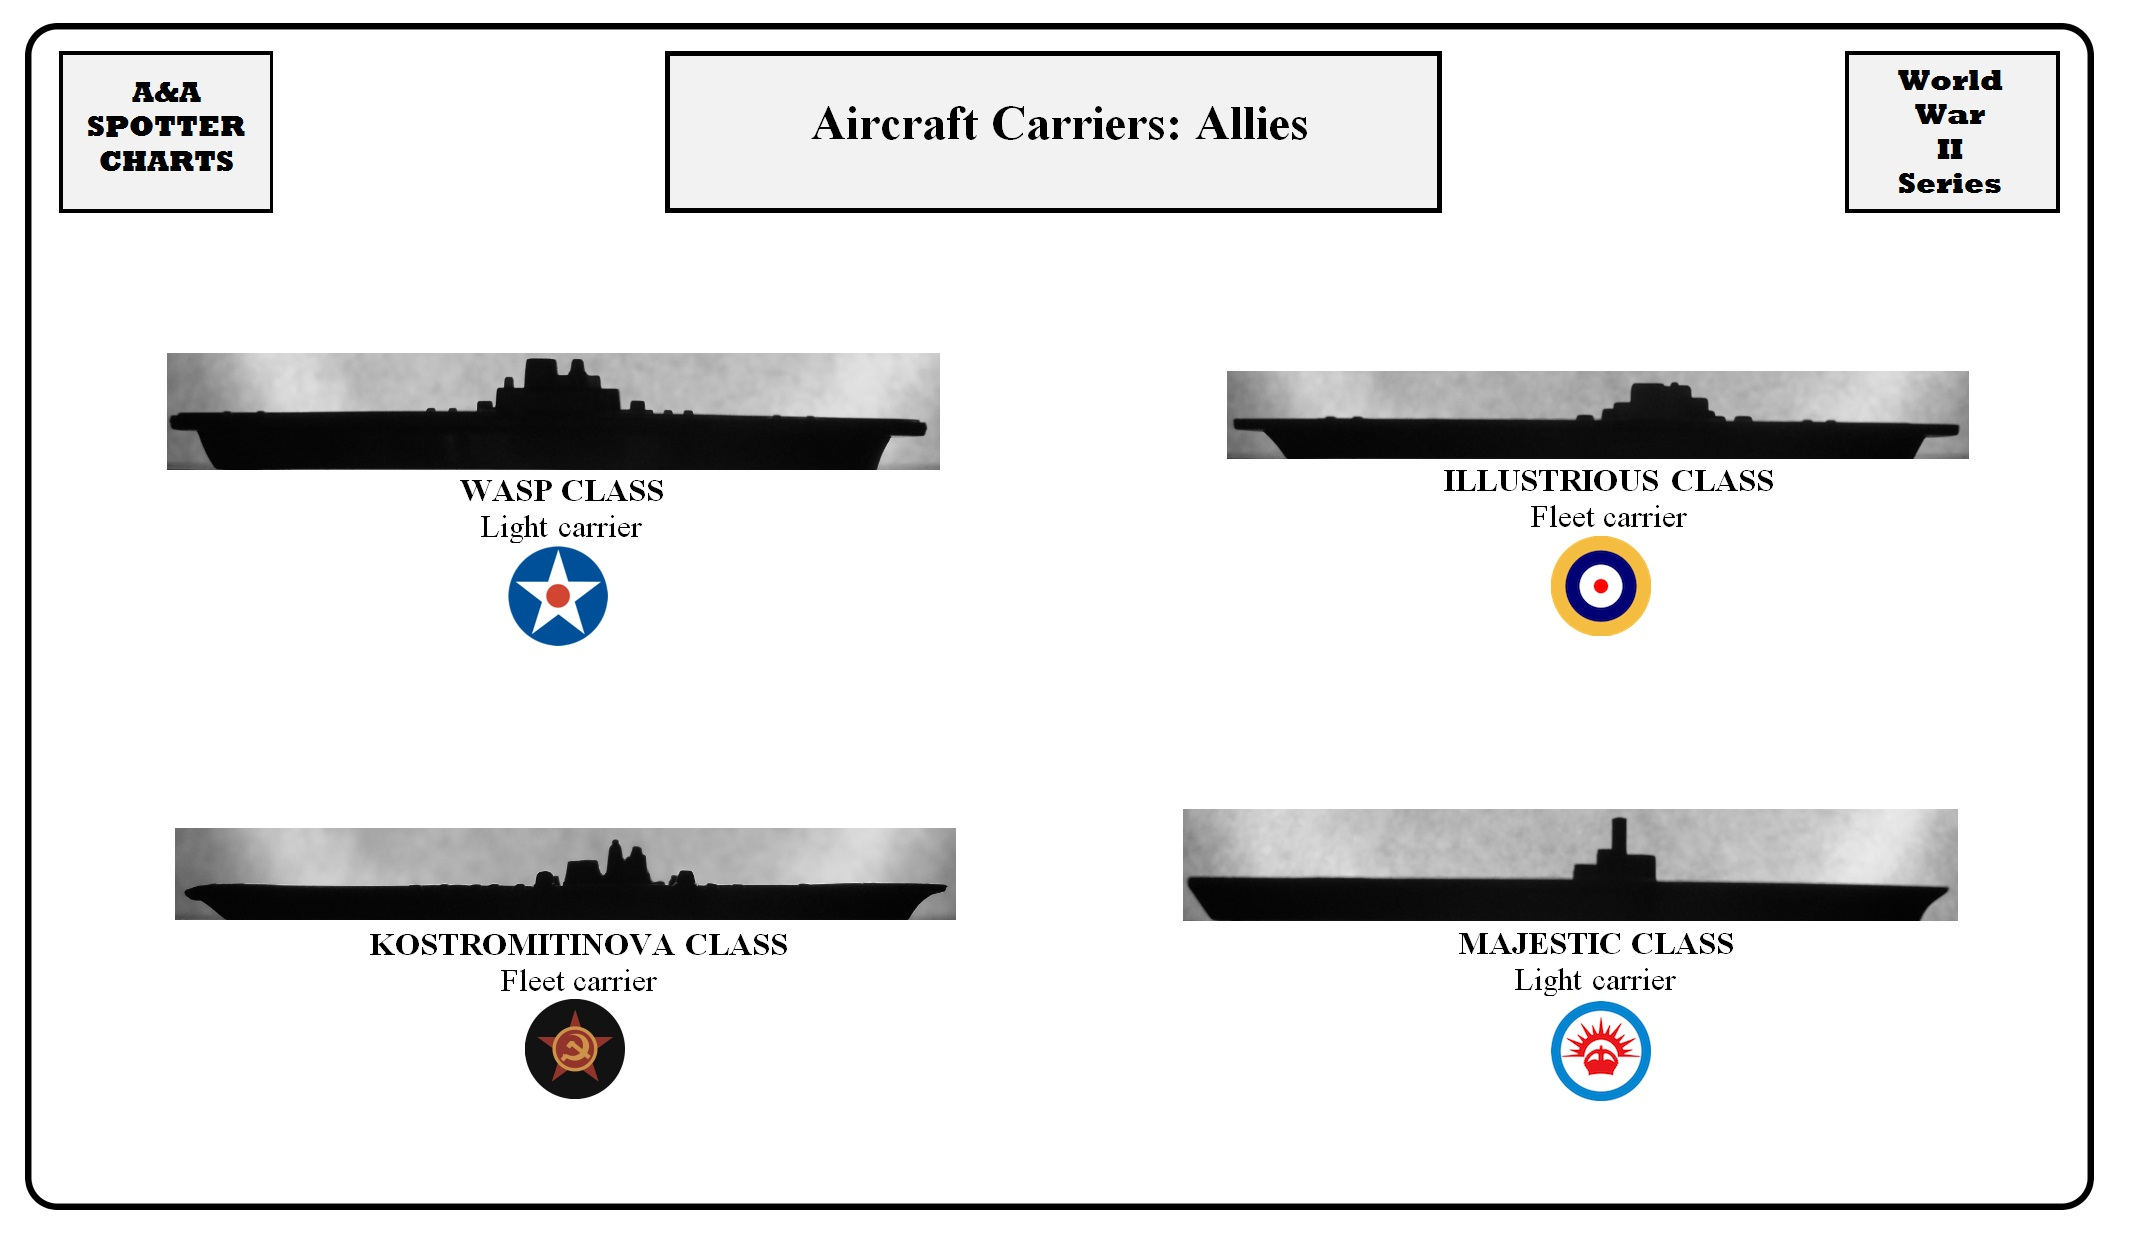 WW2-Sea- Aircraft Carriers-Allies.jpg